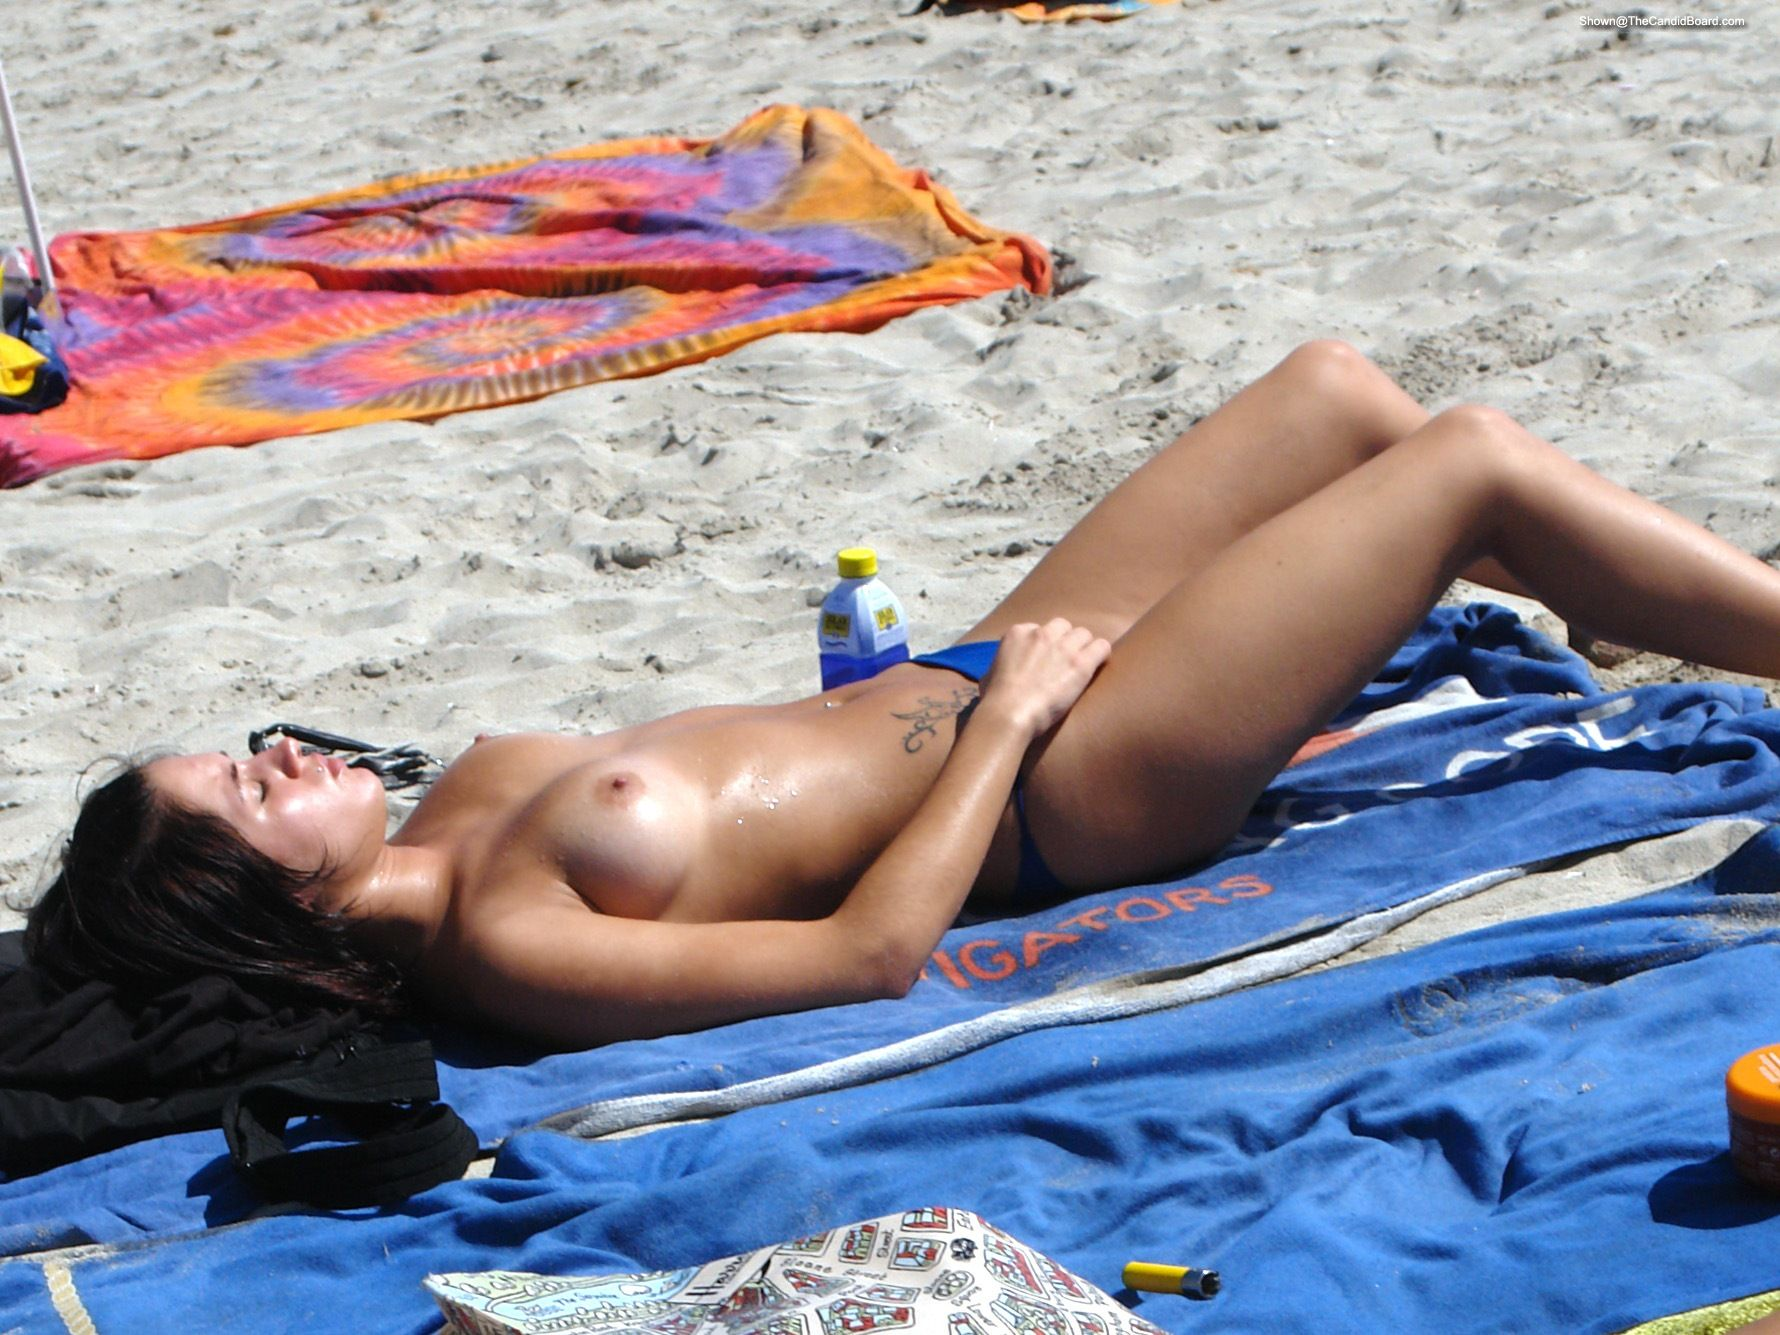 Beach toples at the Category:Topless women